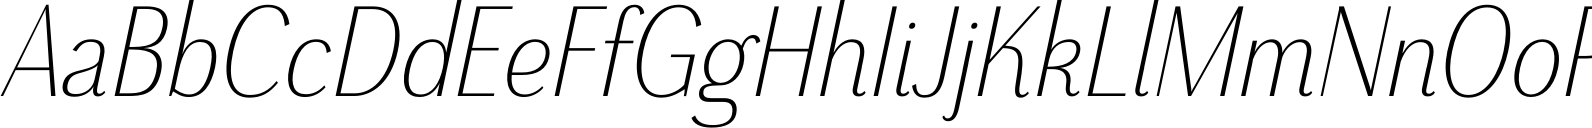 Grenale Cond Light Italic